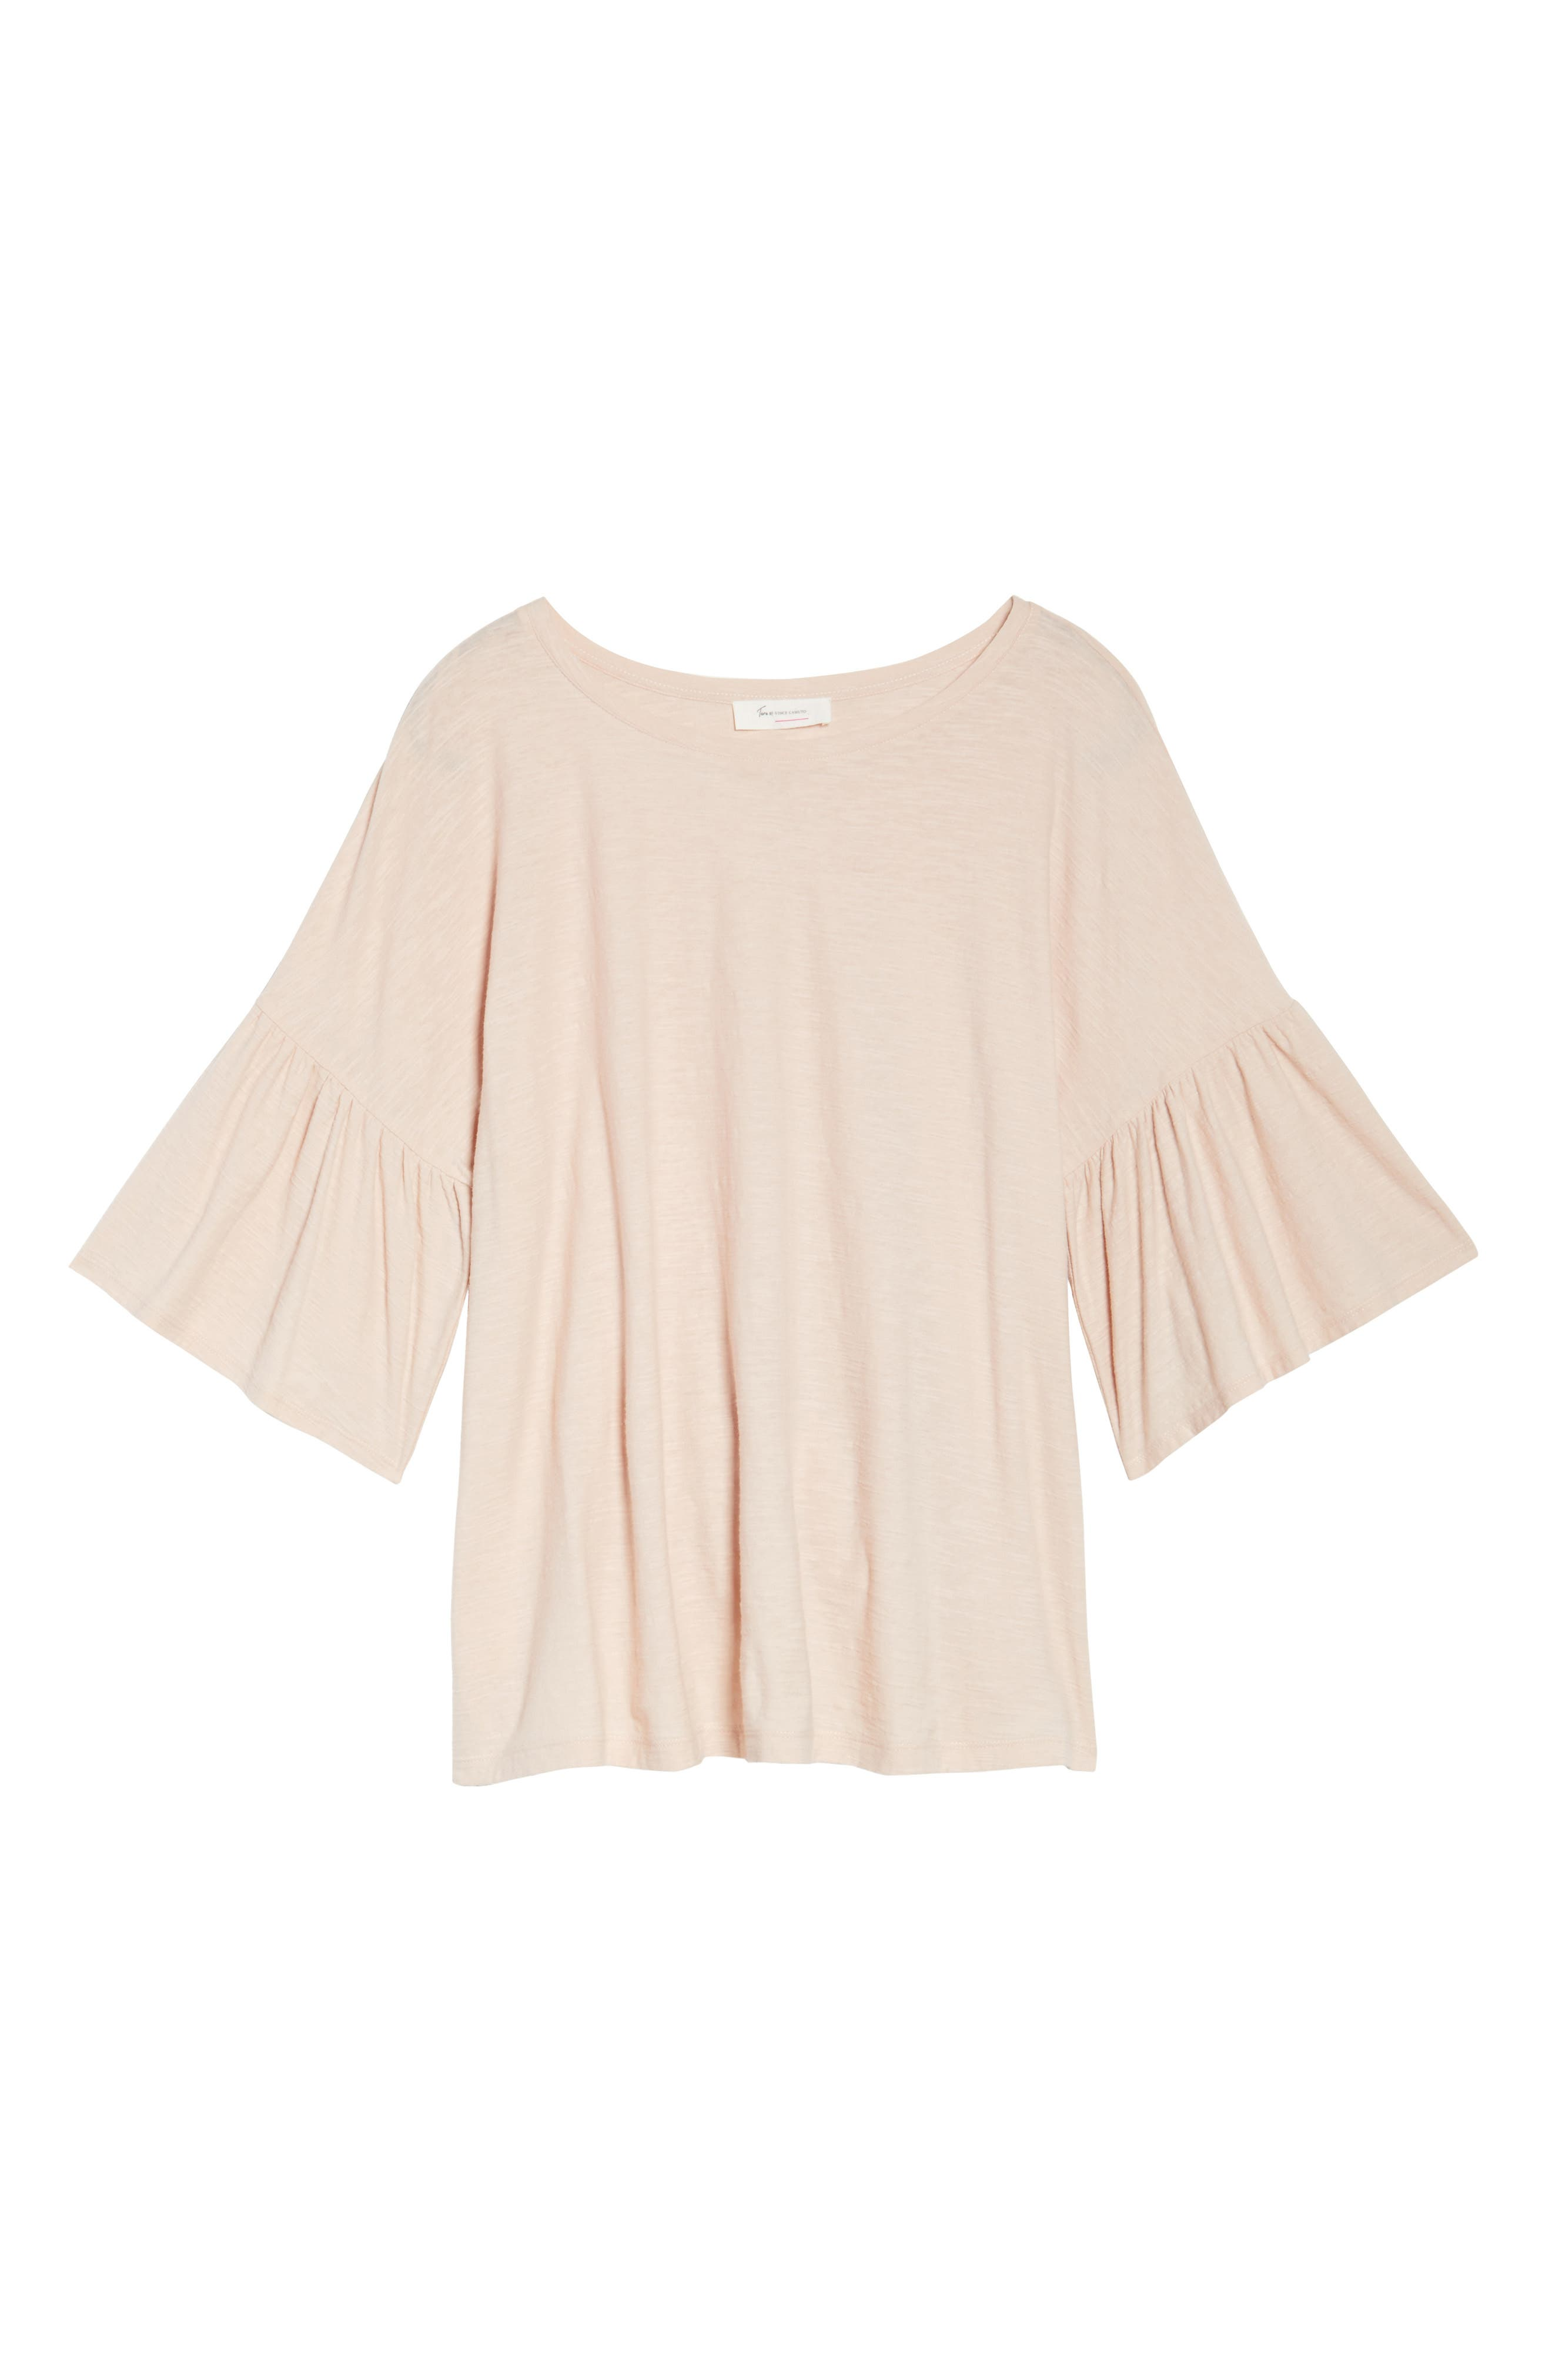 Vince Camuto Relaxed Bell Sleeve Cotton Tee,                             Alternate thumbnail 6, color,                             651